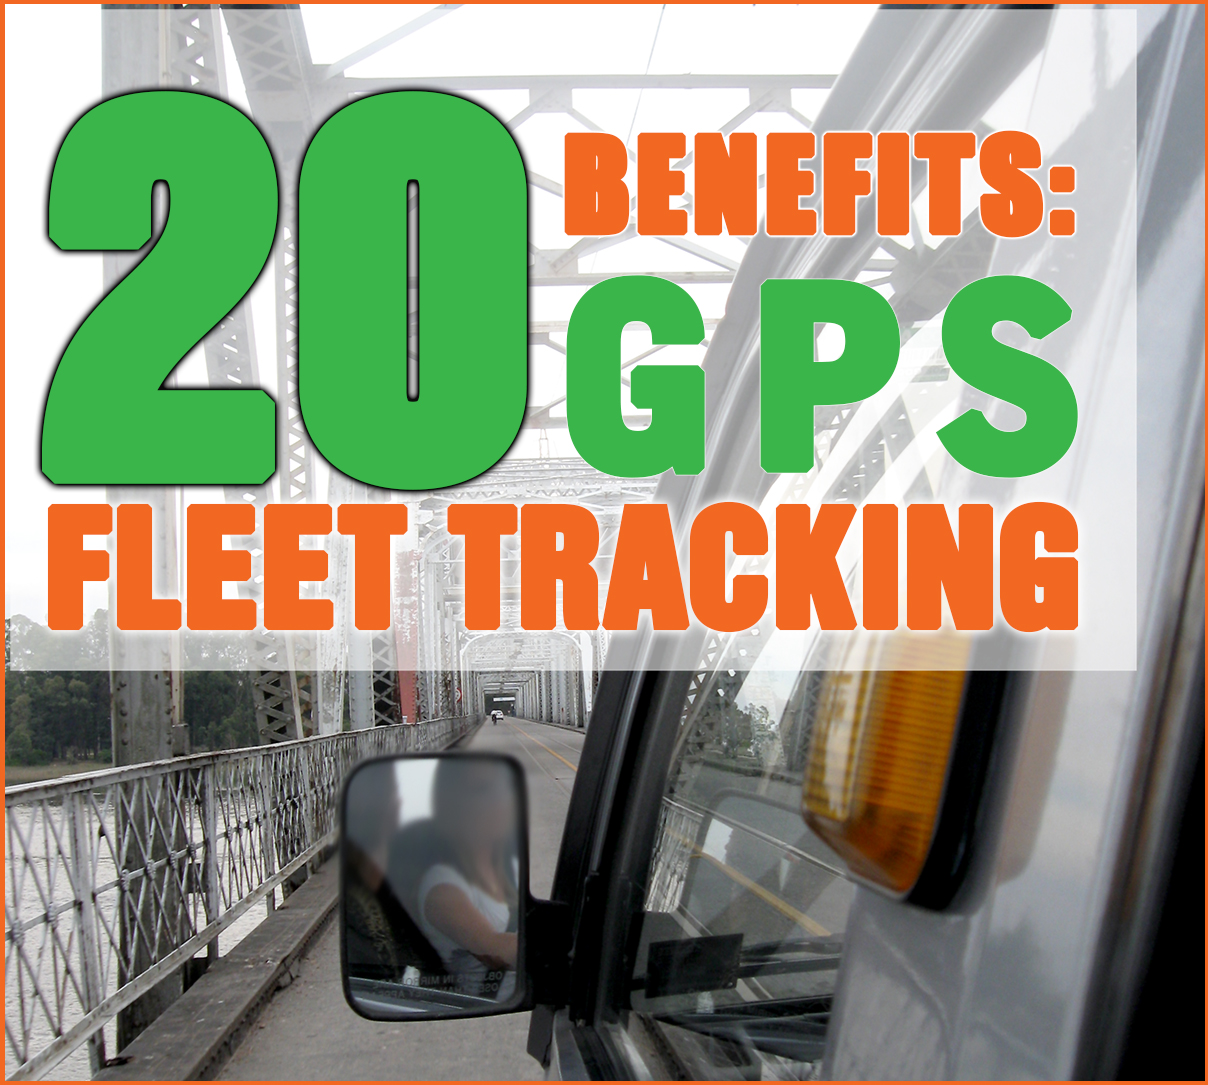 Benefits of GPS Fleet Tracking